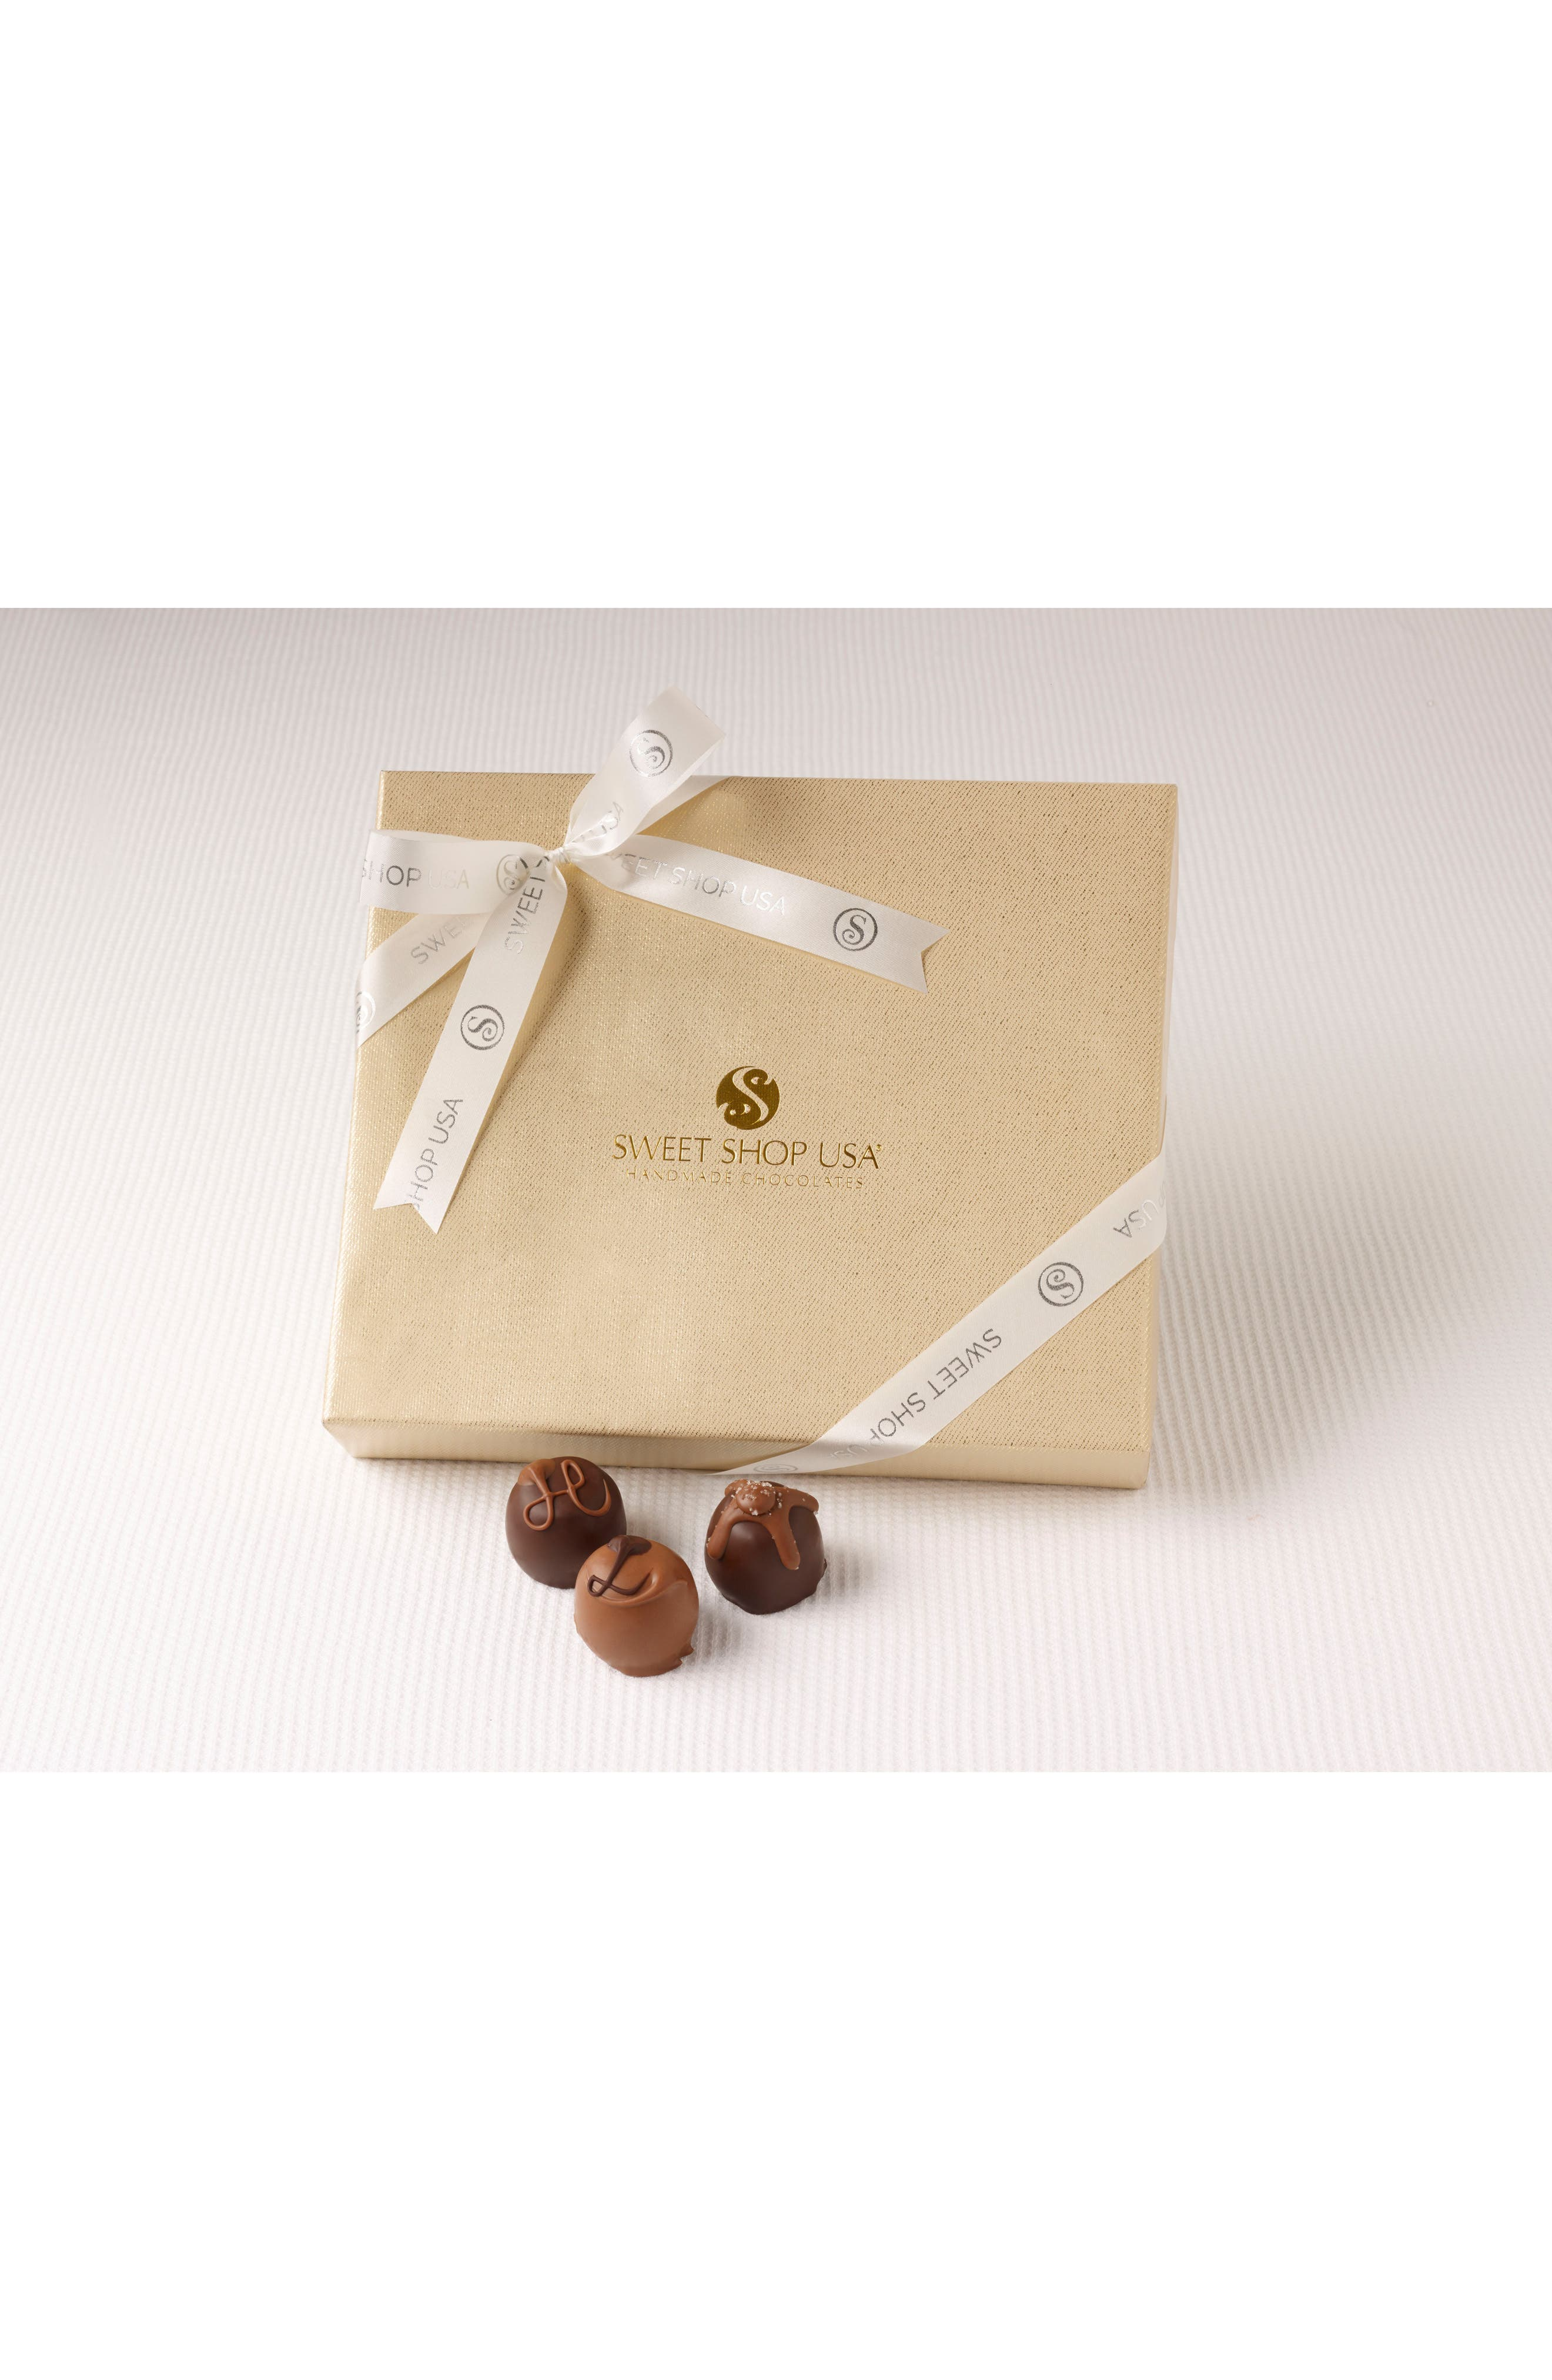 18 Piece Assorted Truffles Everyday Box,                             Main thumbnail 1, color,                             GOLD